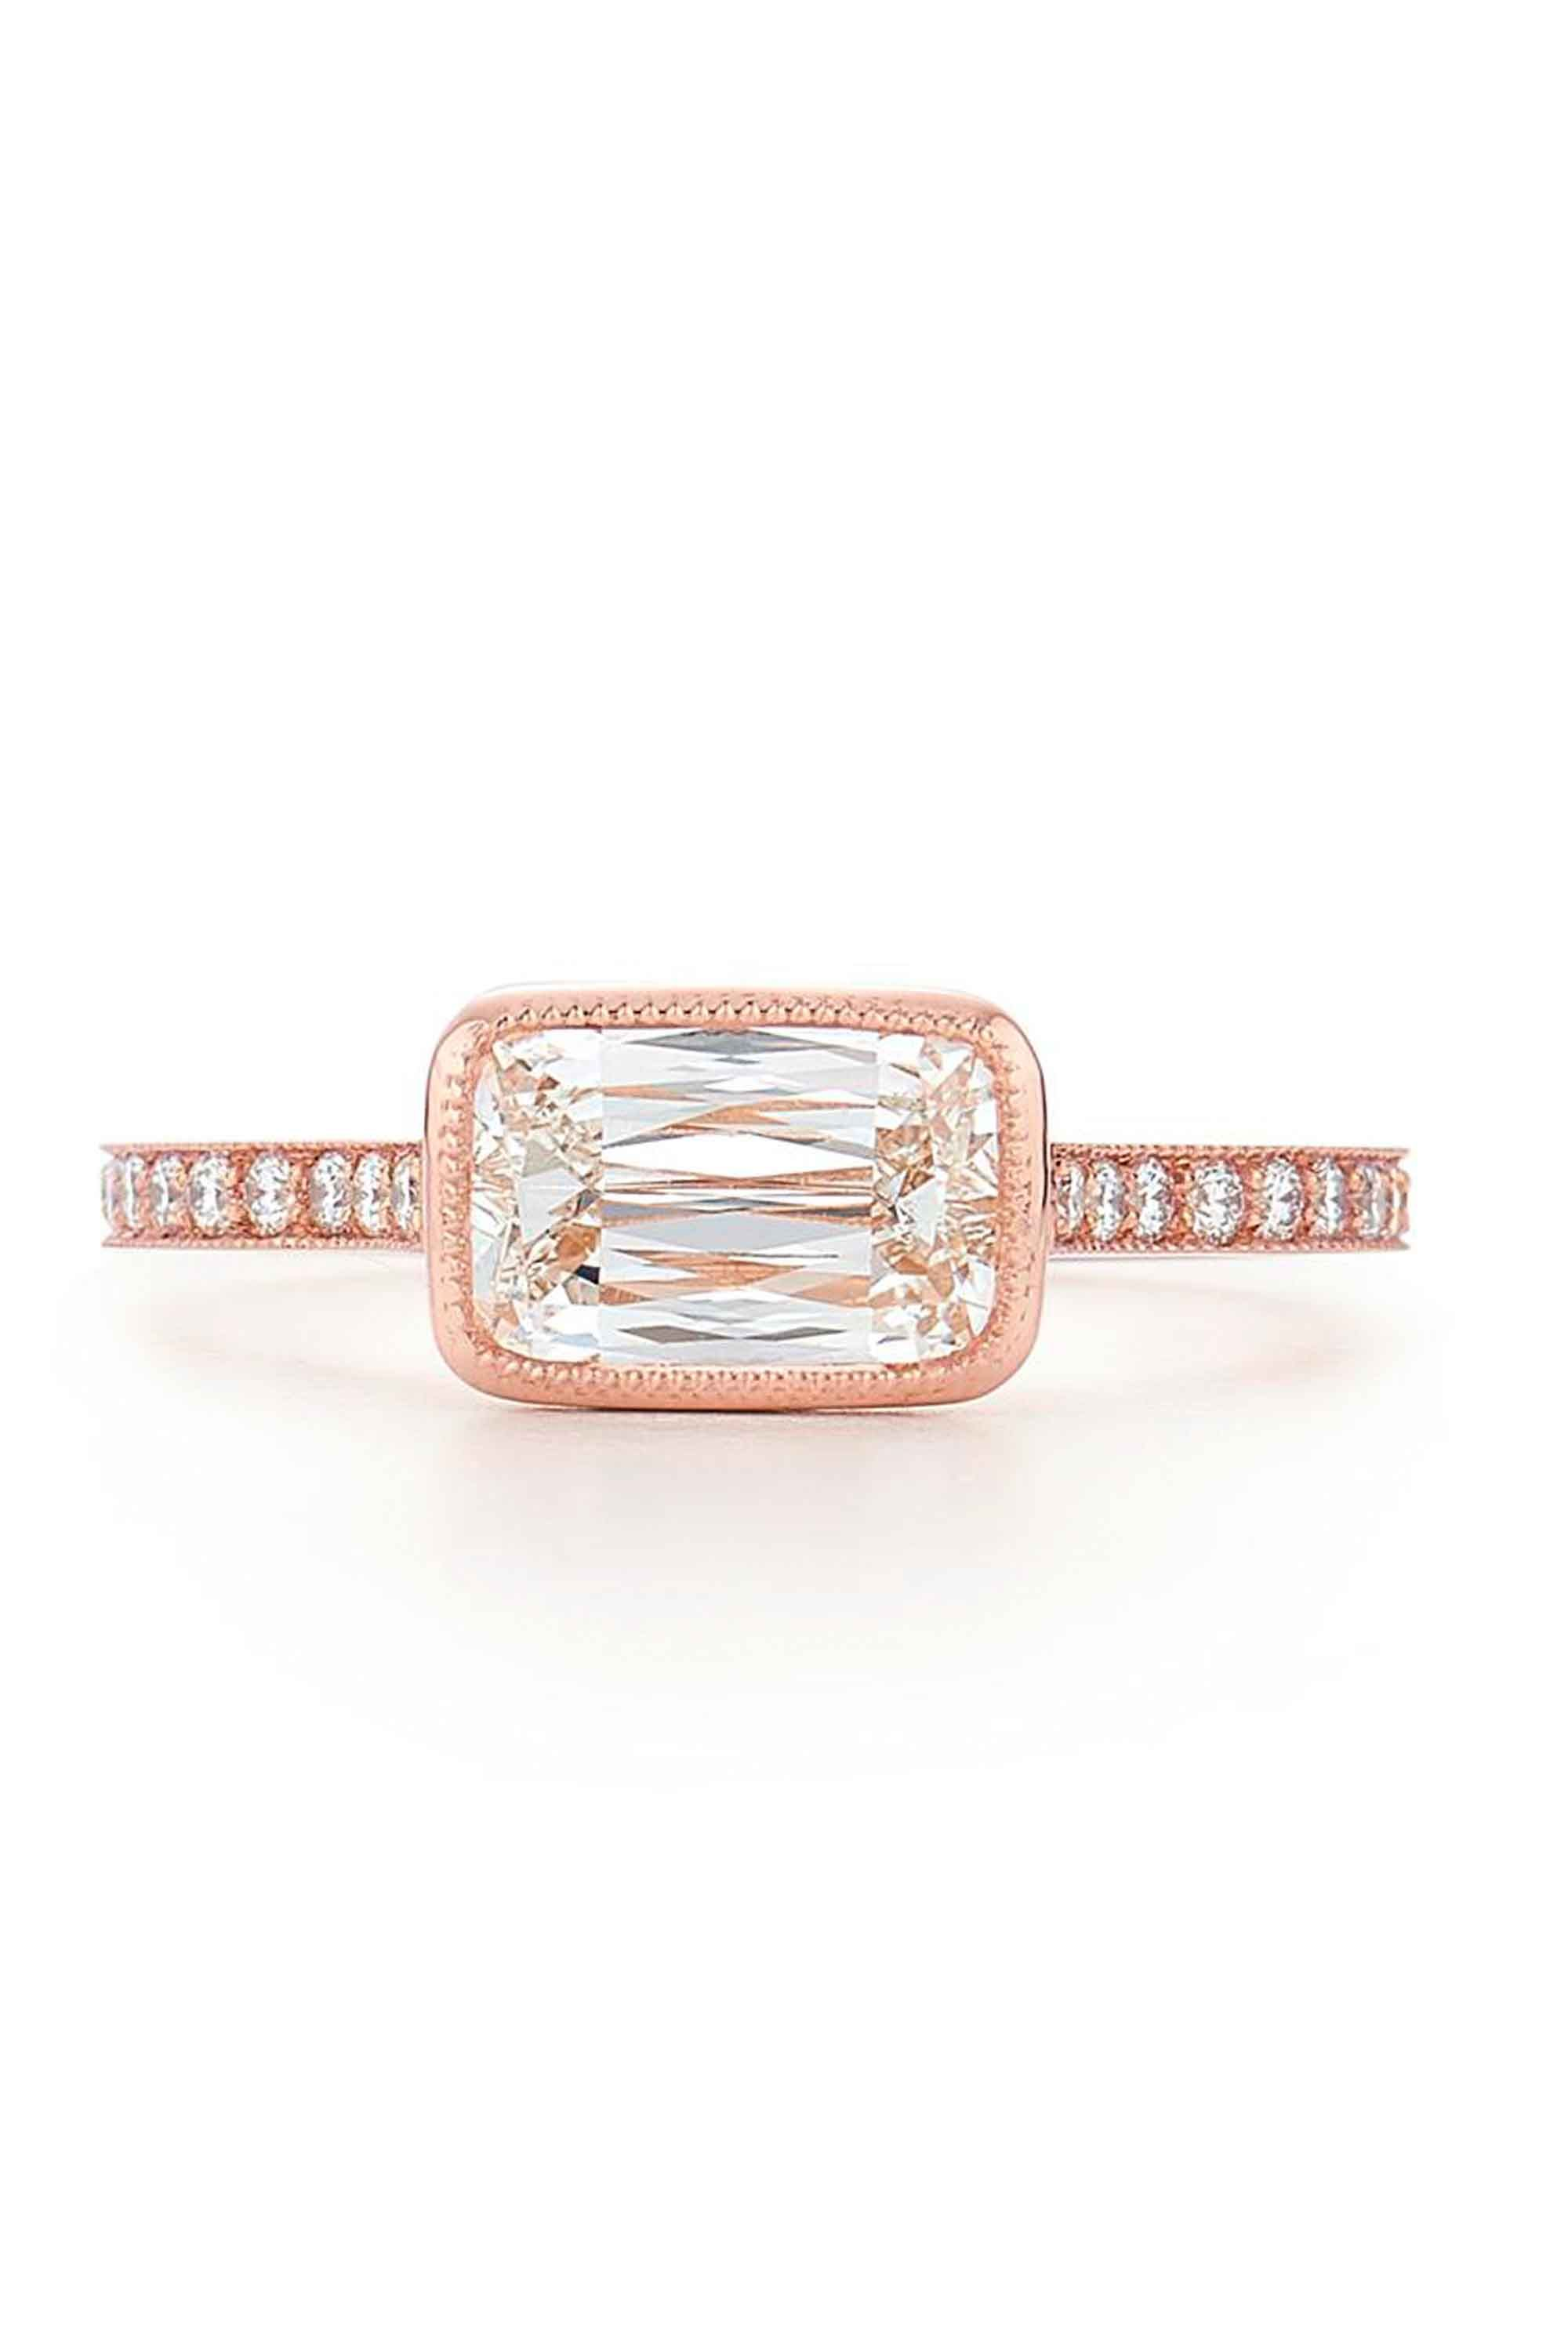 j z cushion light pink at cut engagement carat yellow sale for id fancy jewelry rings old diamond ring